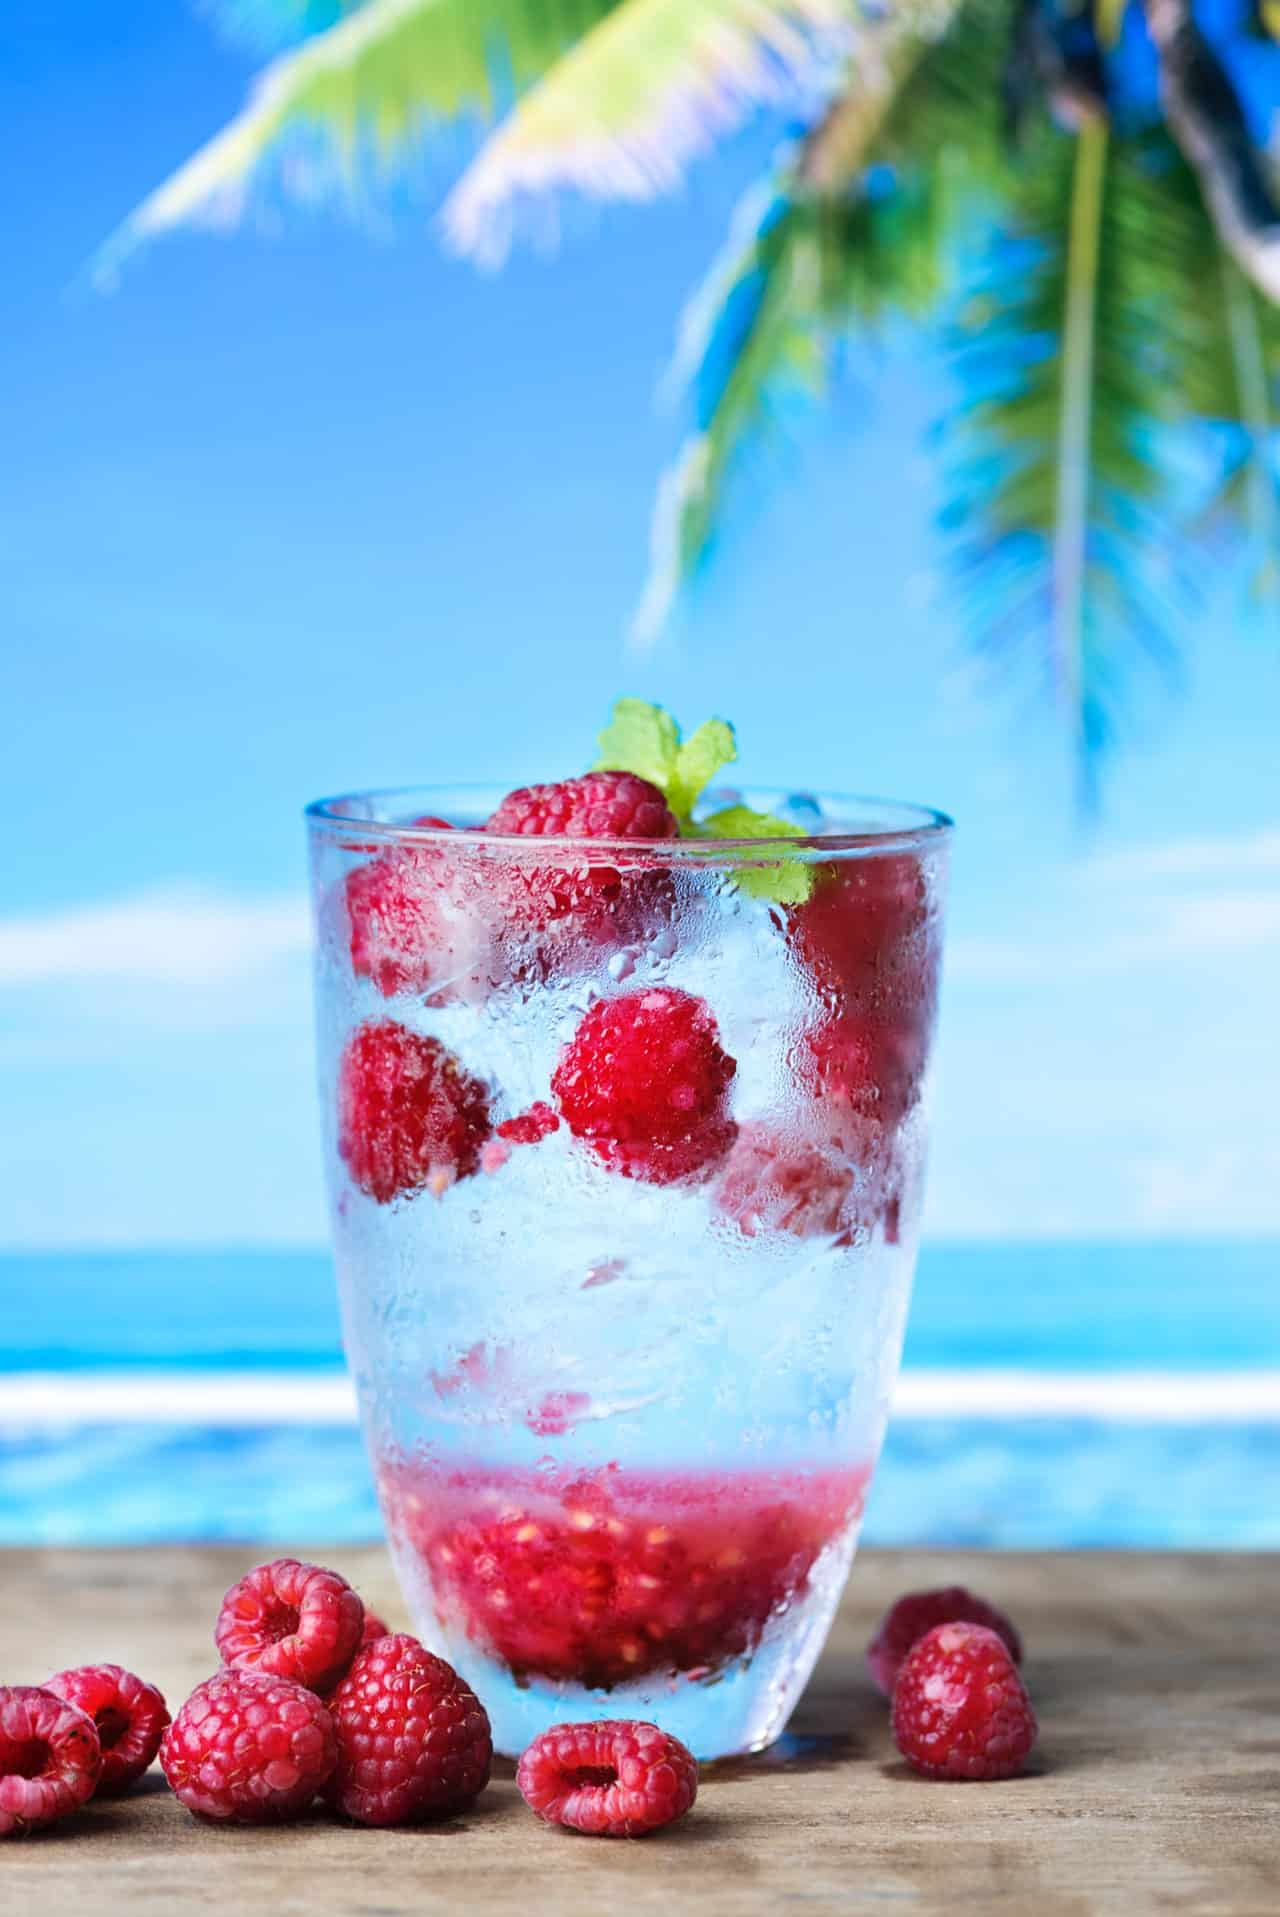 ten-summer-party-ideas-6-ice